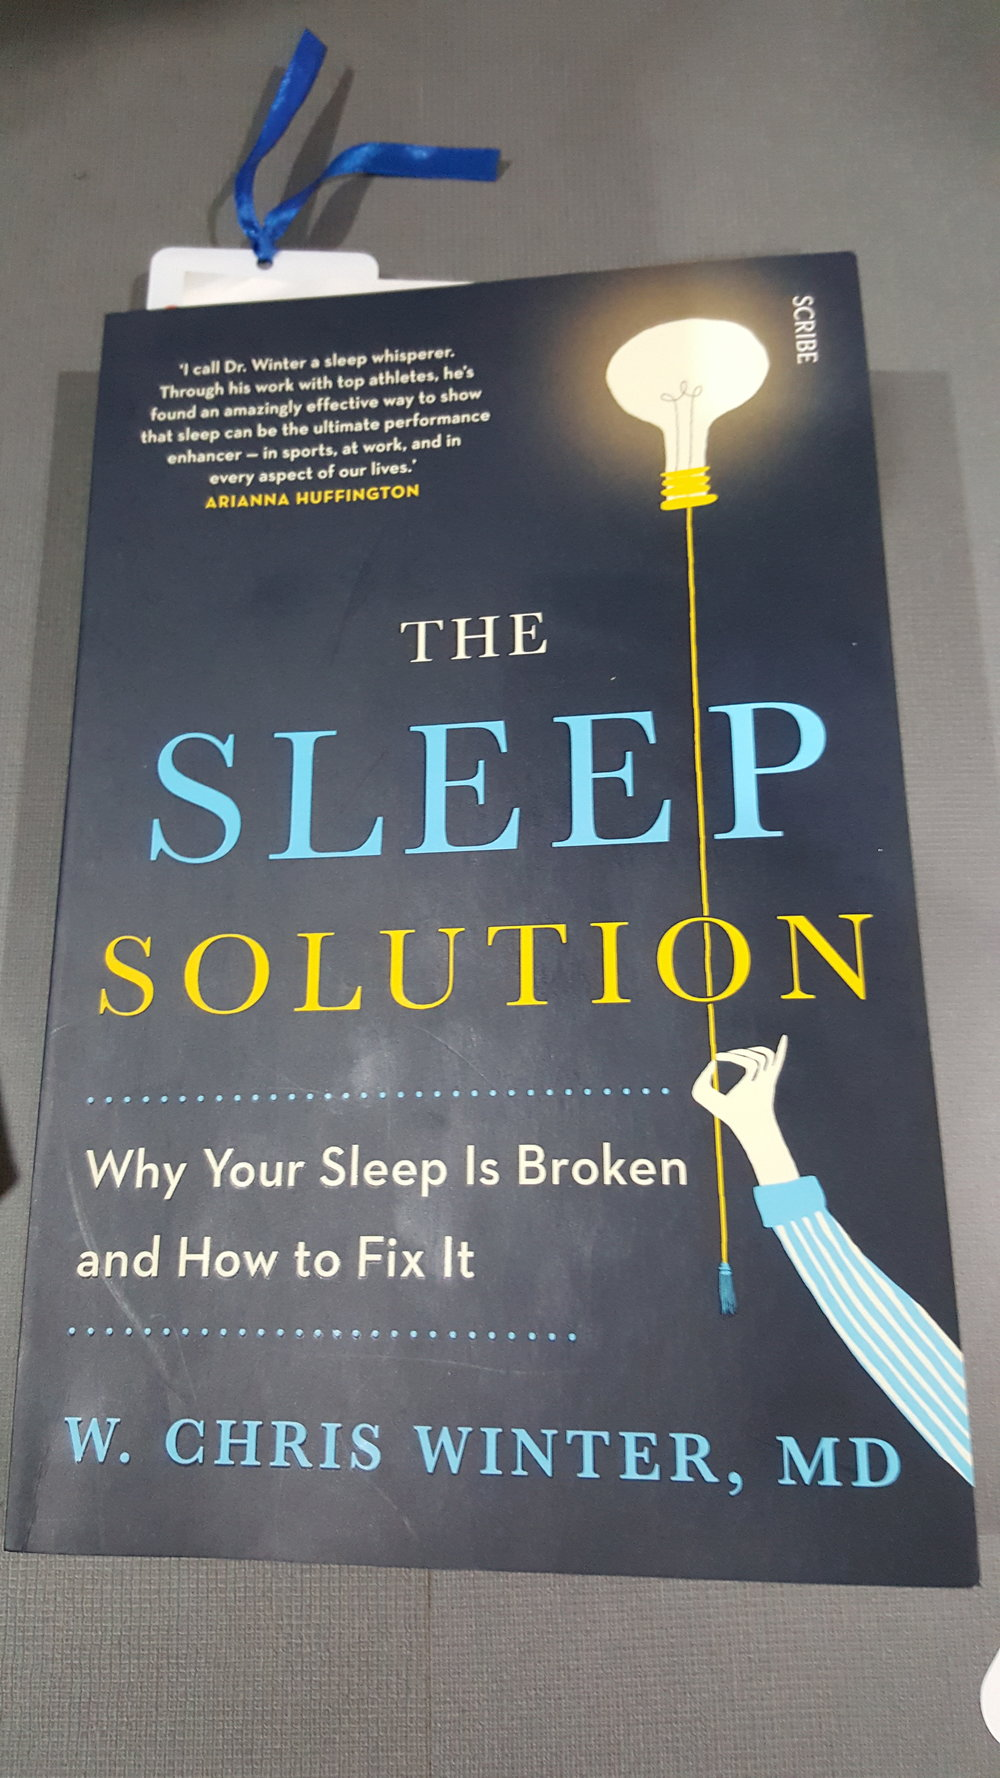 the sleep solution w. chris winter.jpg